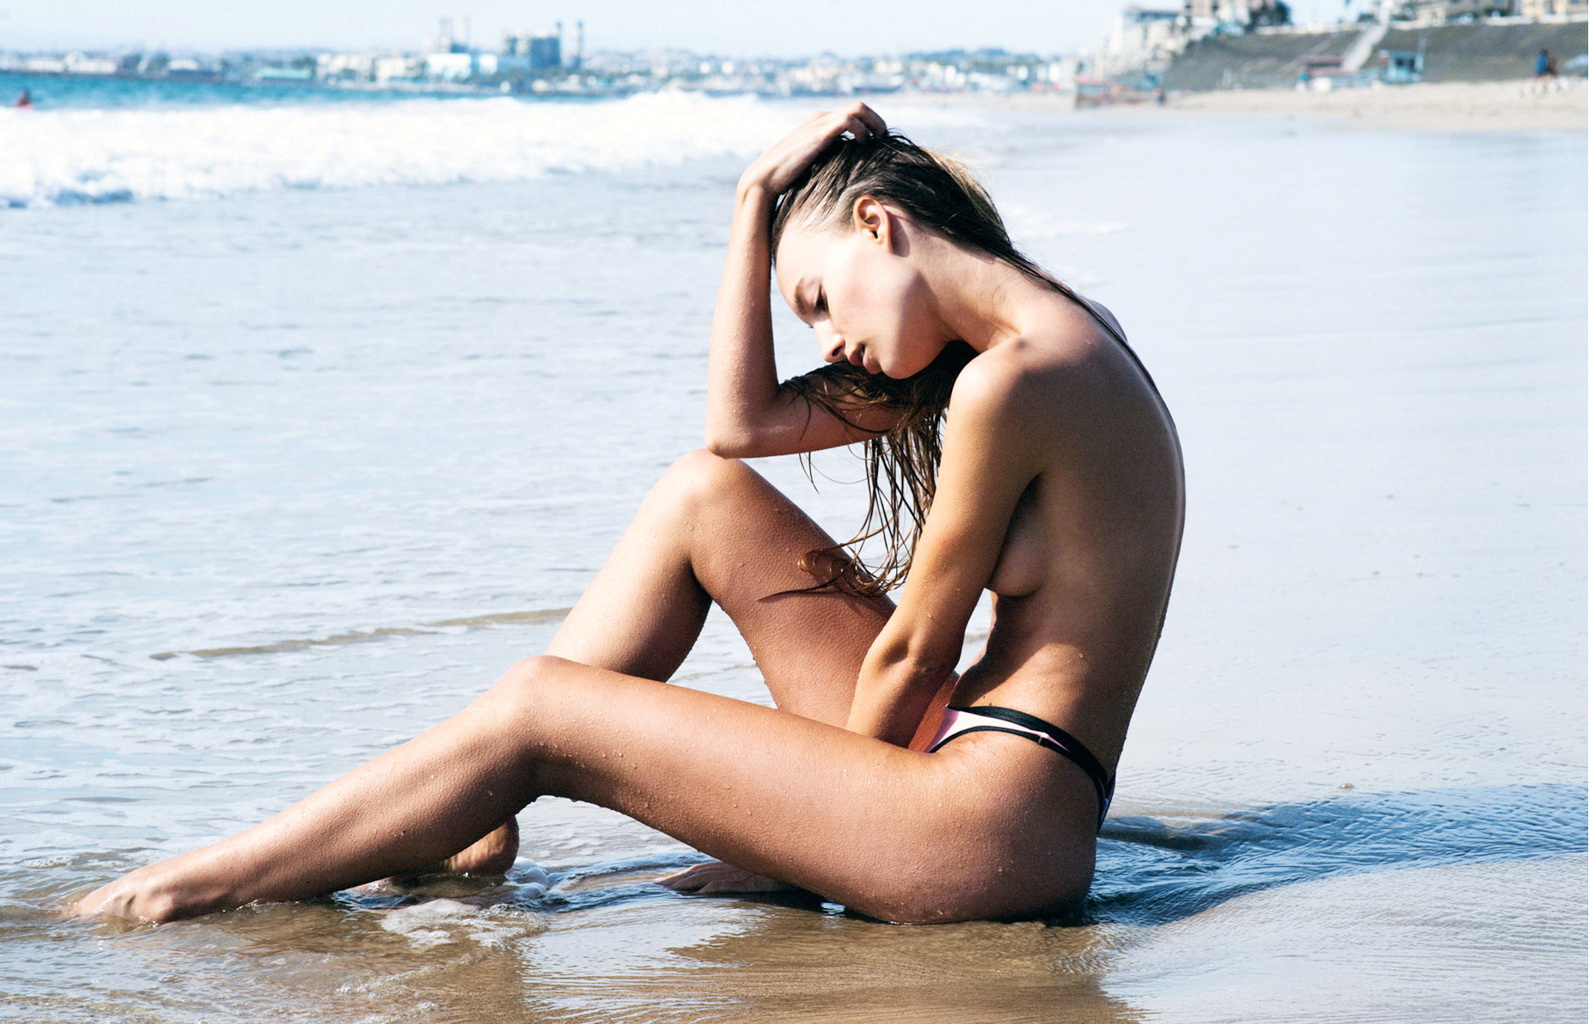 Maya Stepper topless at the beach for SIR The Label January 2016 issue